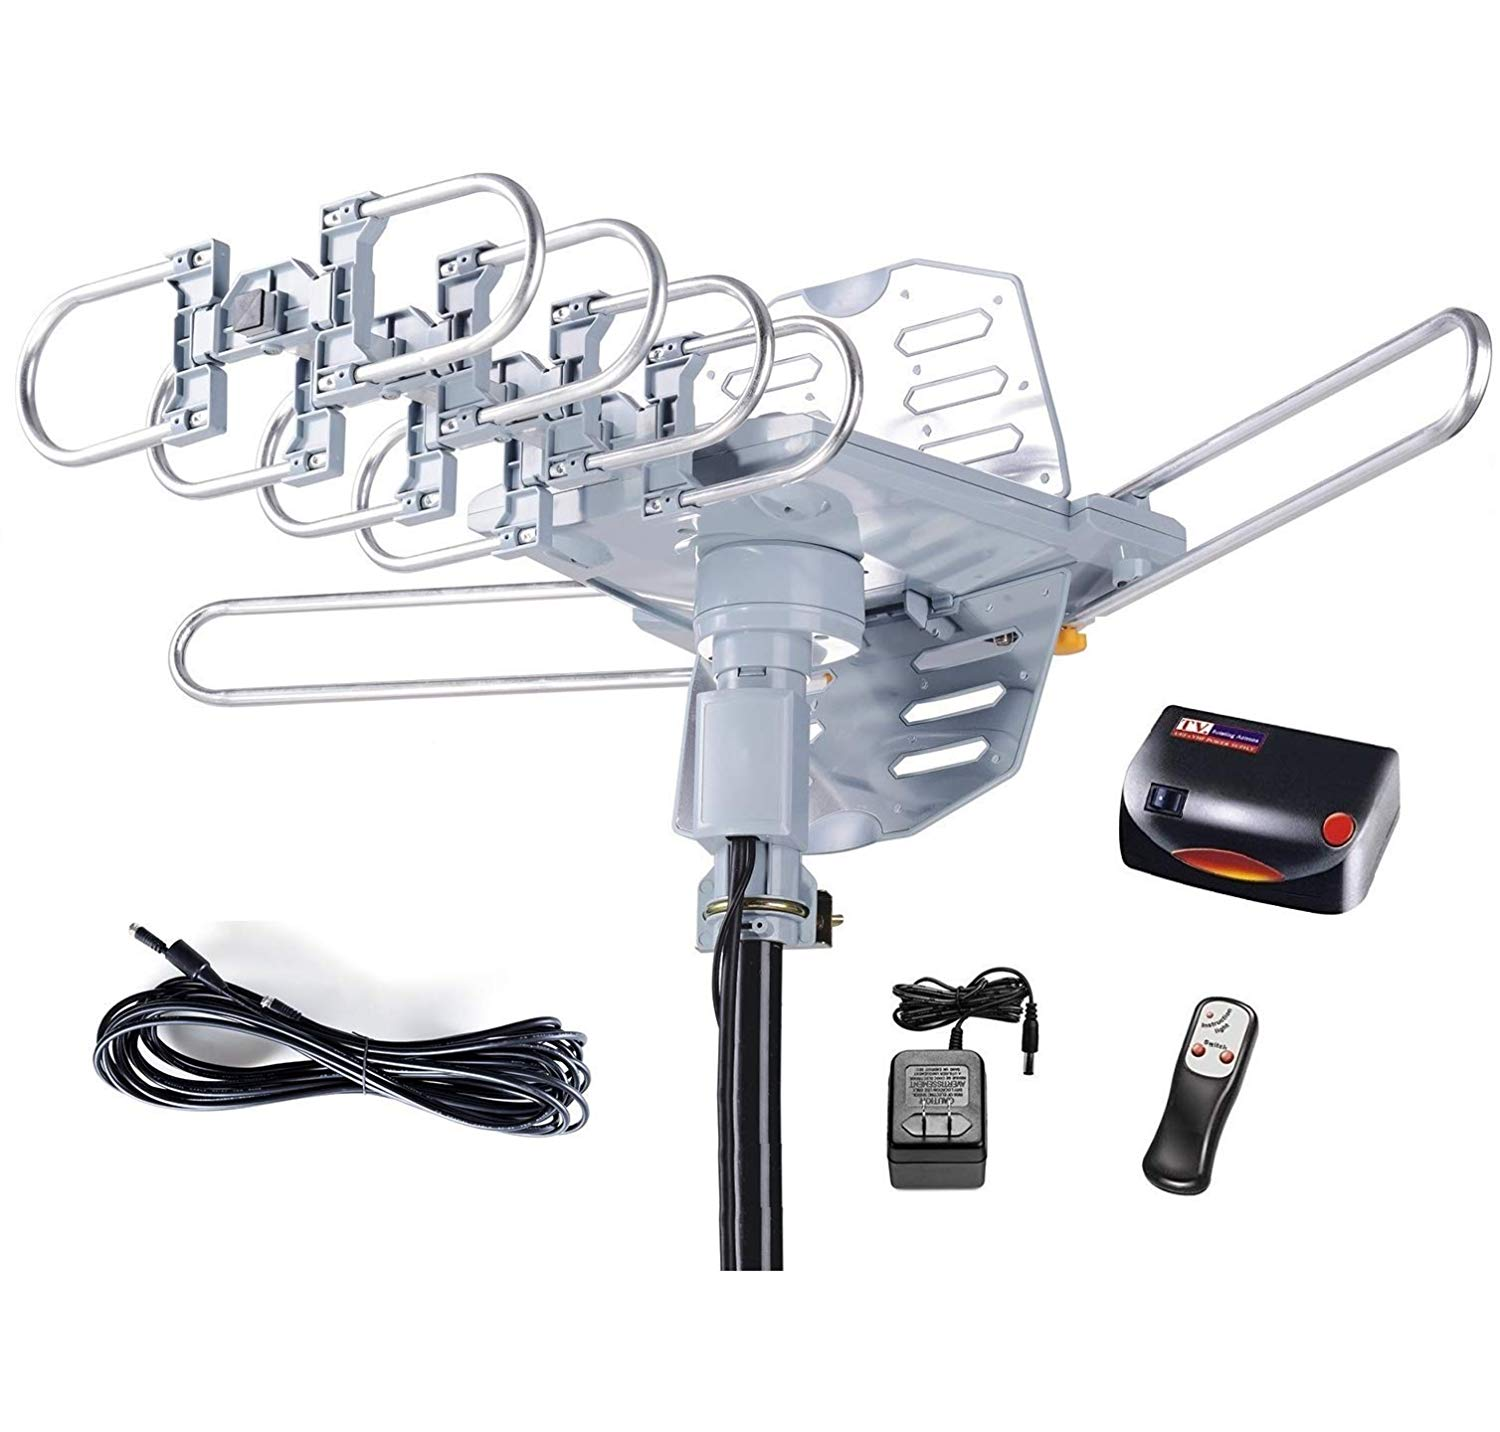 Compact Outdoor Indoor Yagi HDTV Antenna Roof Attic with 80 Mile Range RCA New